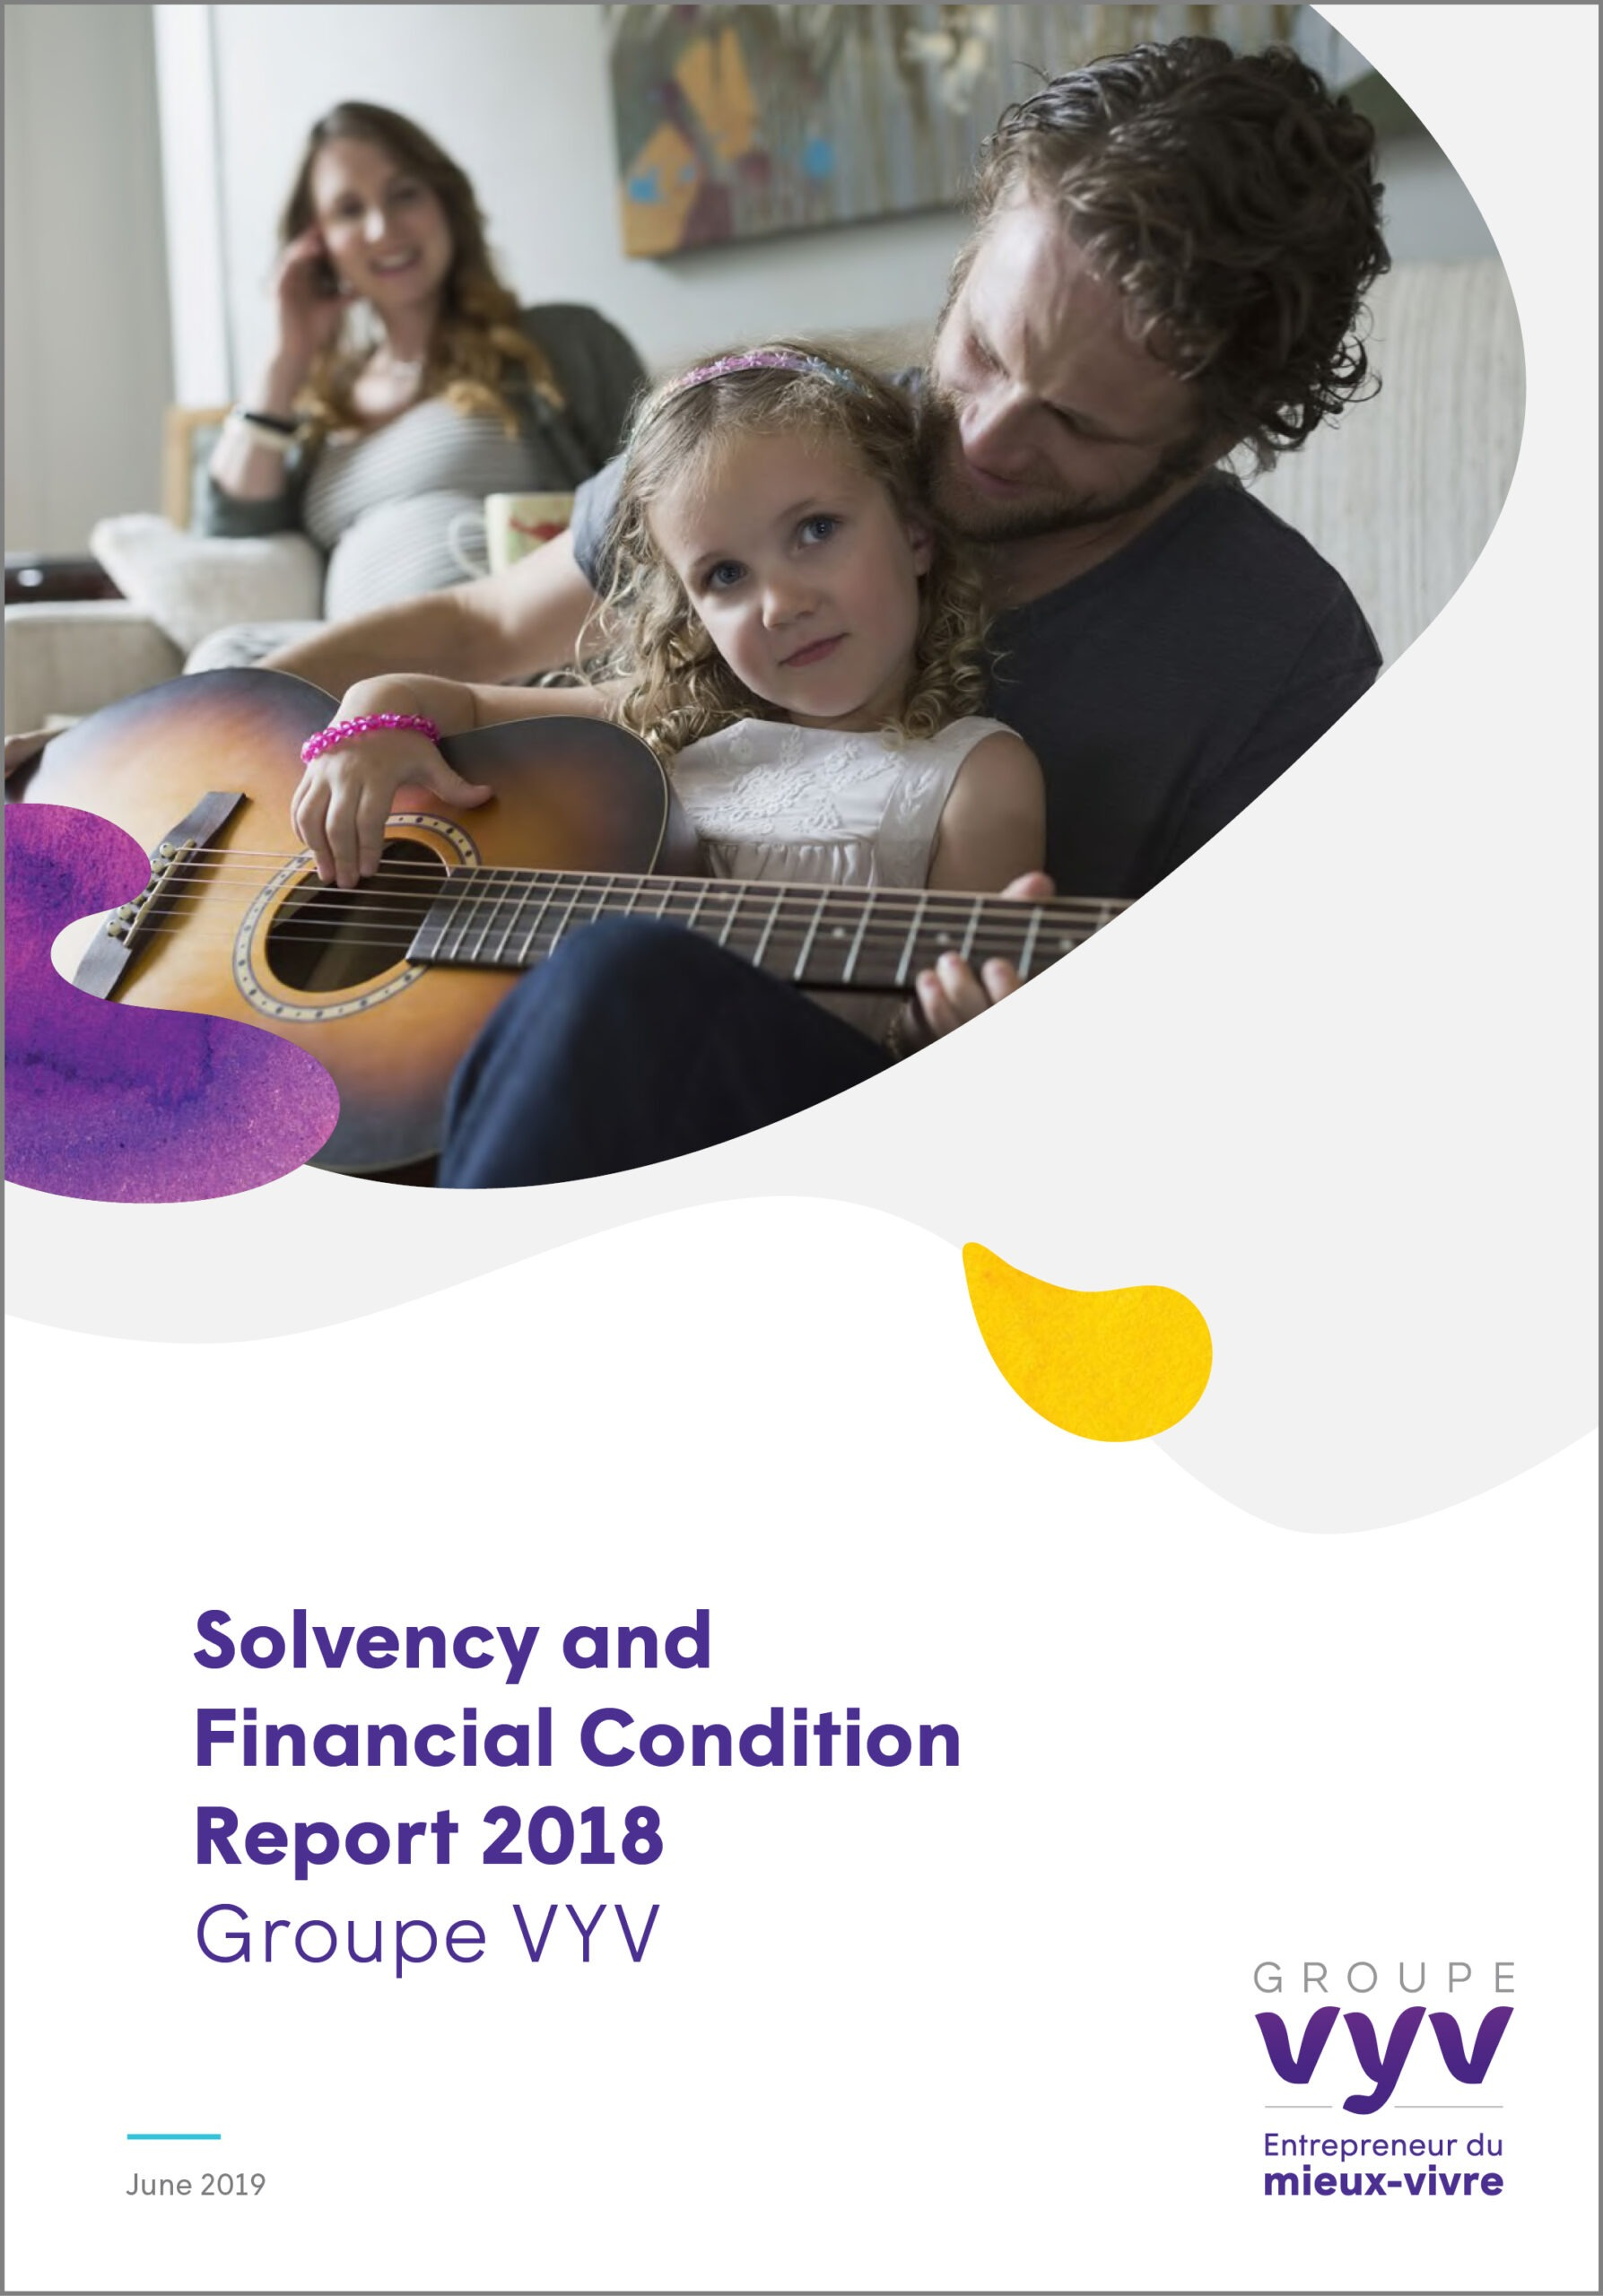 Solvency and Financial Condition Report 2018